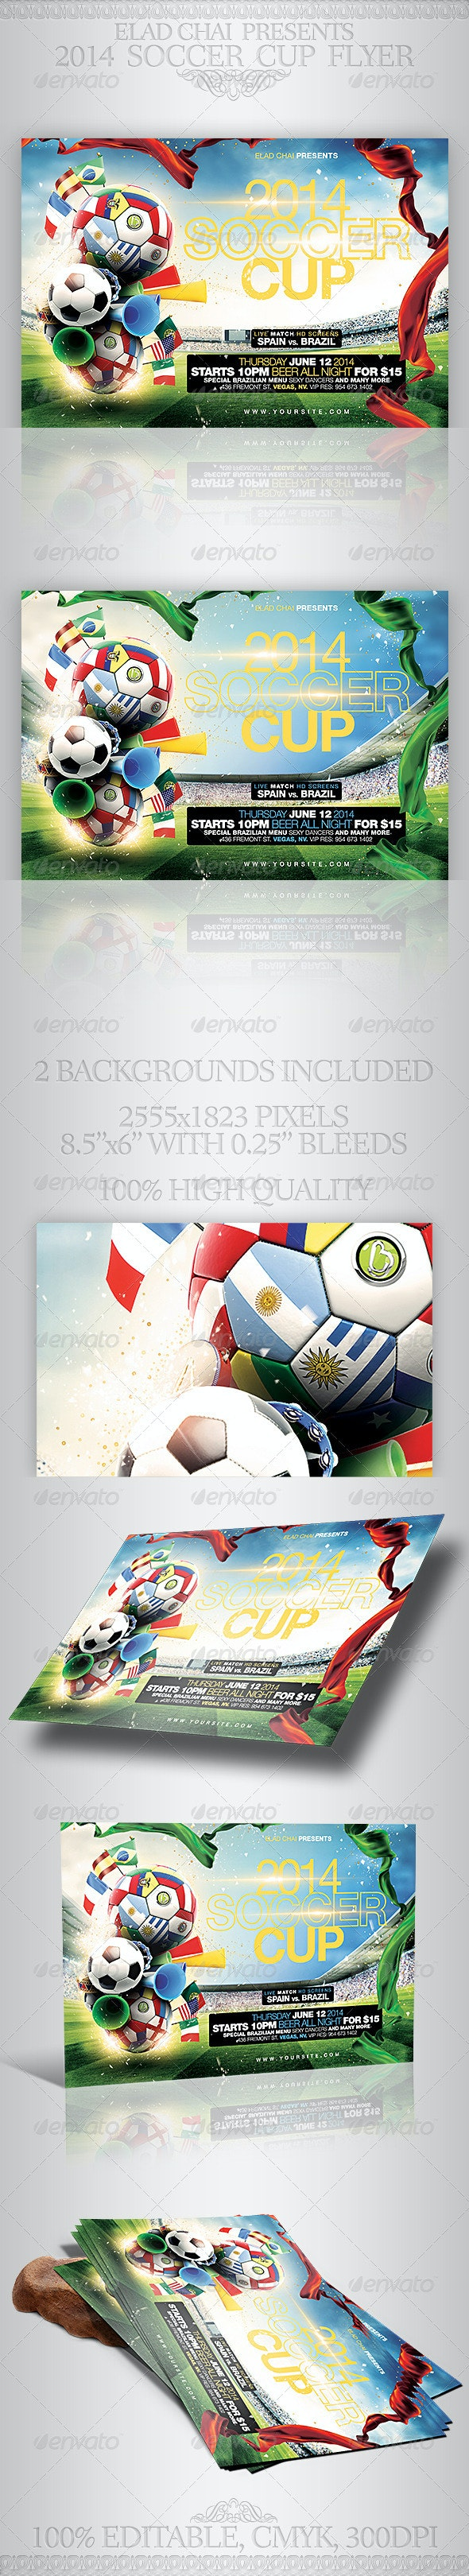 Brazil 2014 Soccer Football Cup Flyer Template - Sports Events